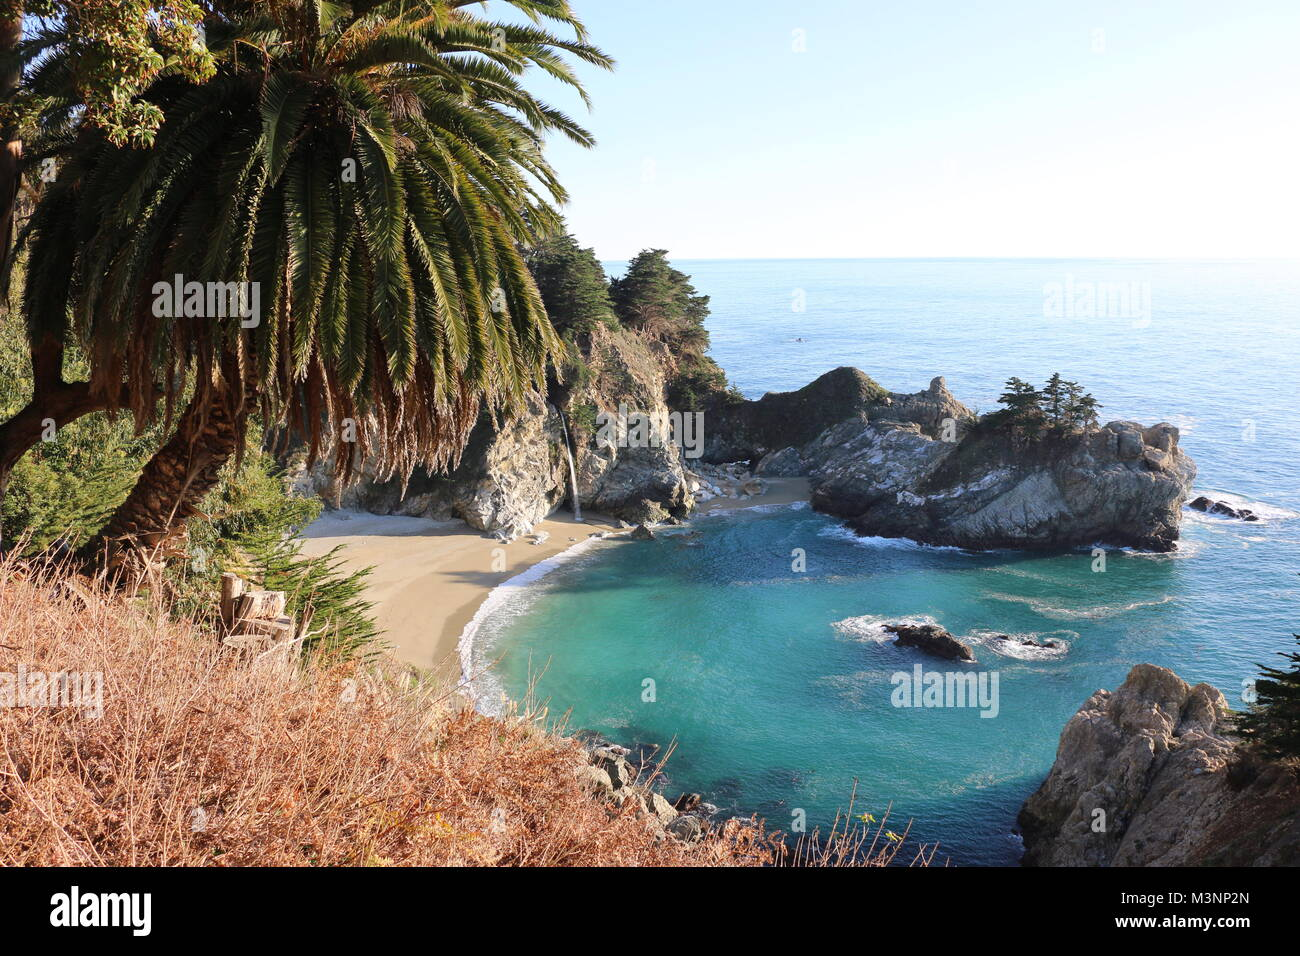 McWay Falls, a beautiful waterfall, plunges into the sand at Julia Pfeiffer Burns State Park, Big Sur, CA. - Stock Image